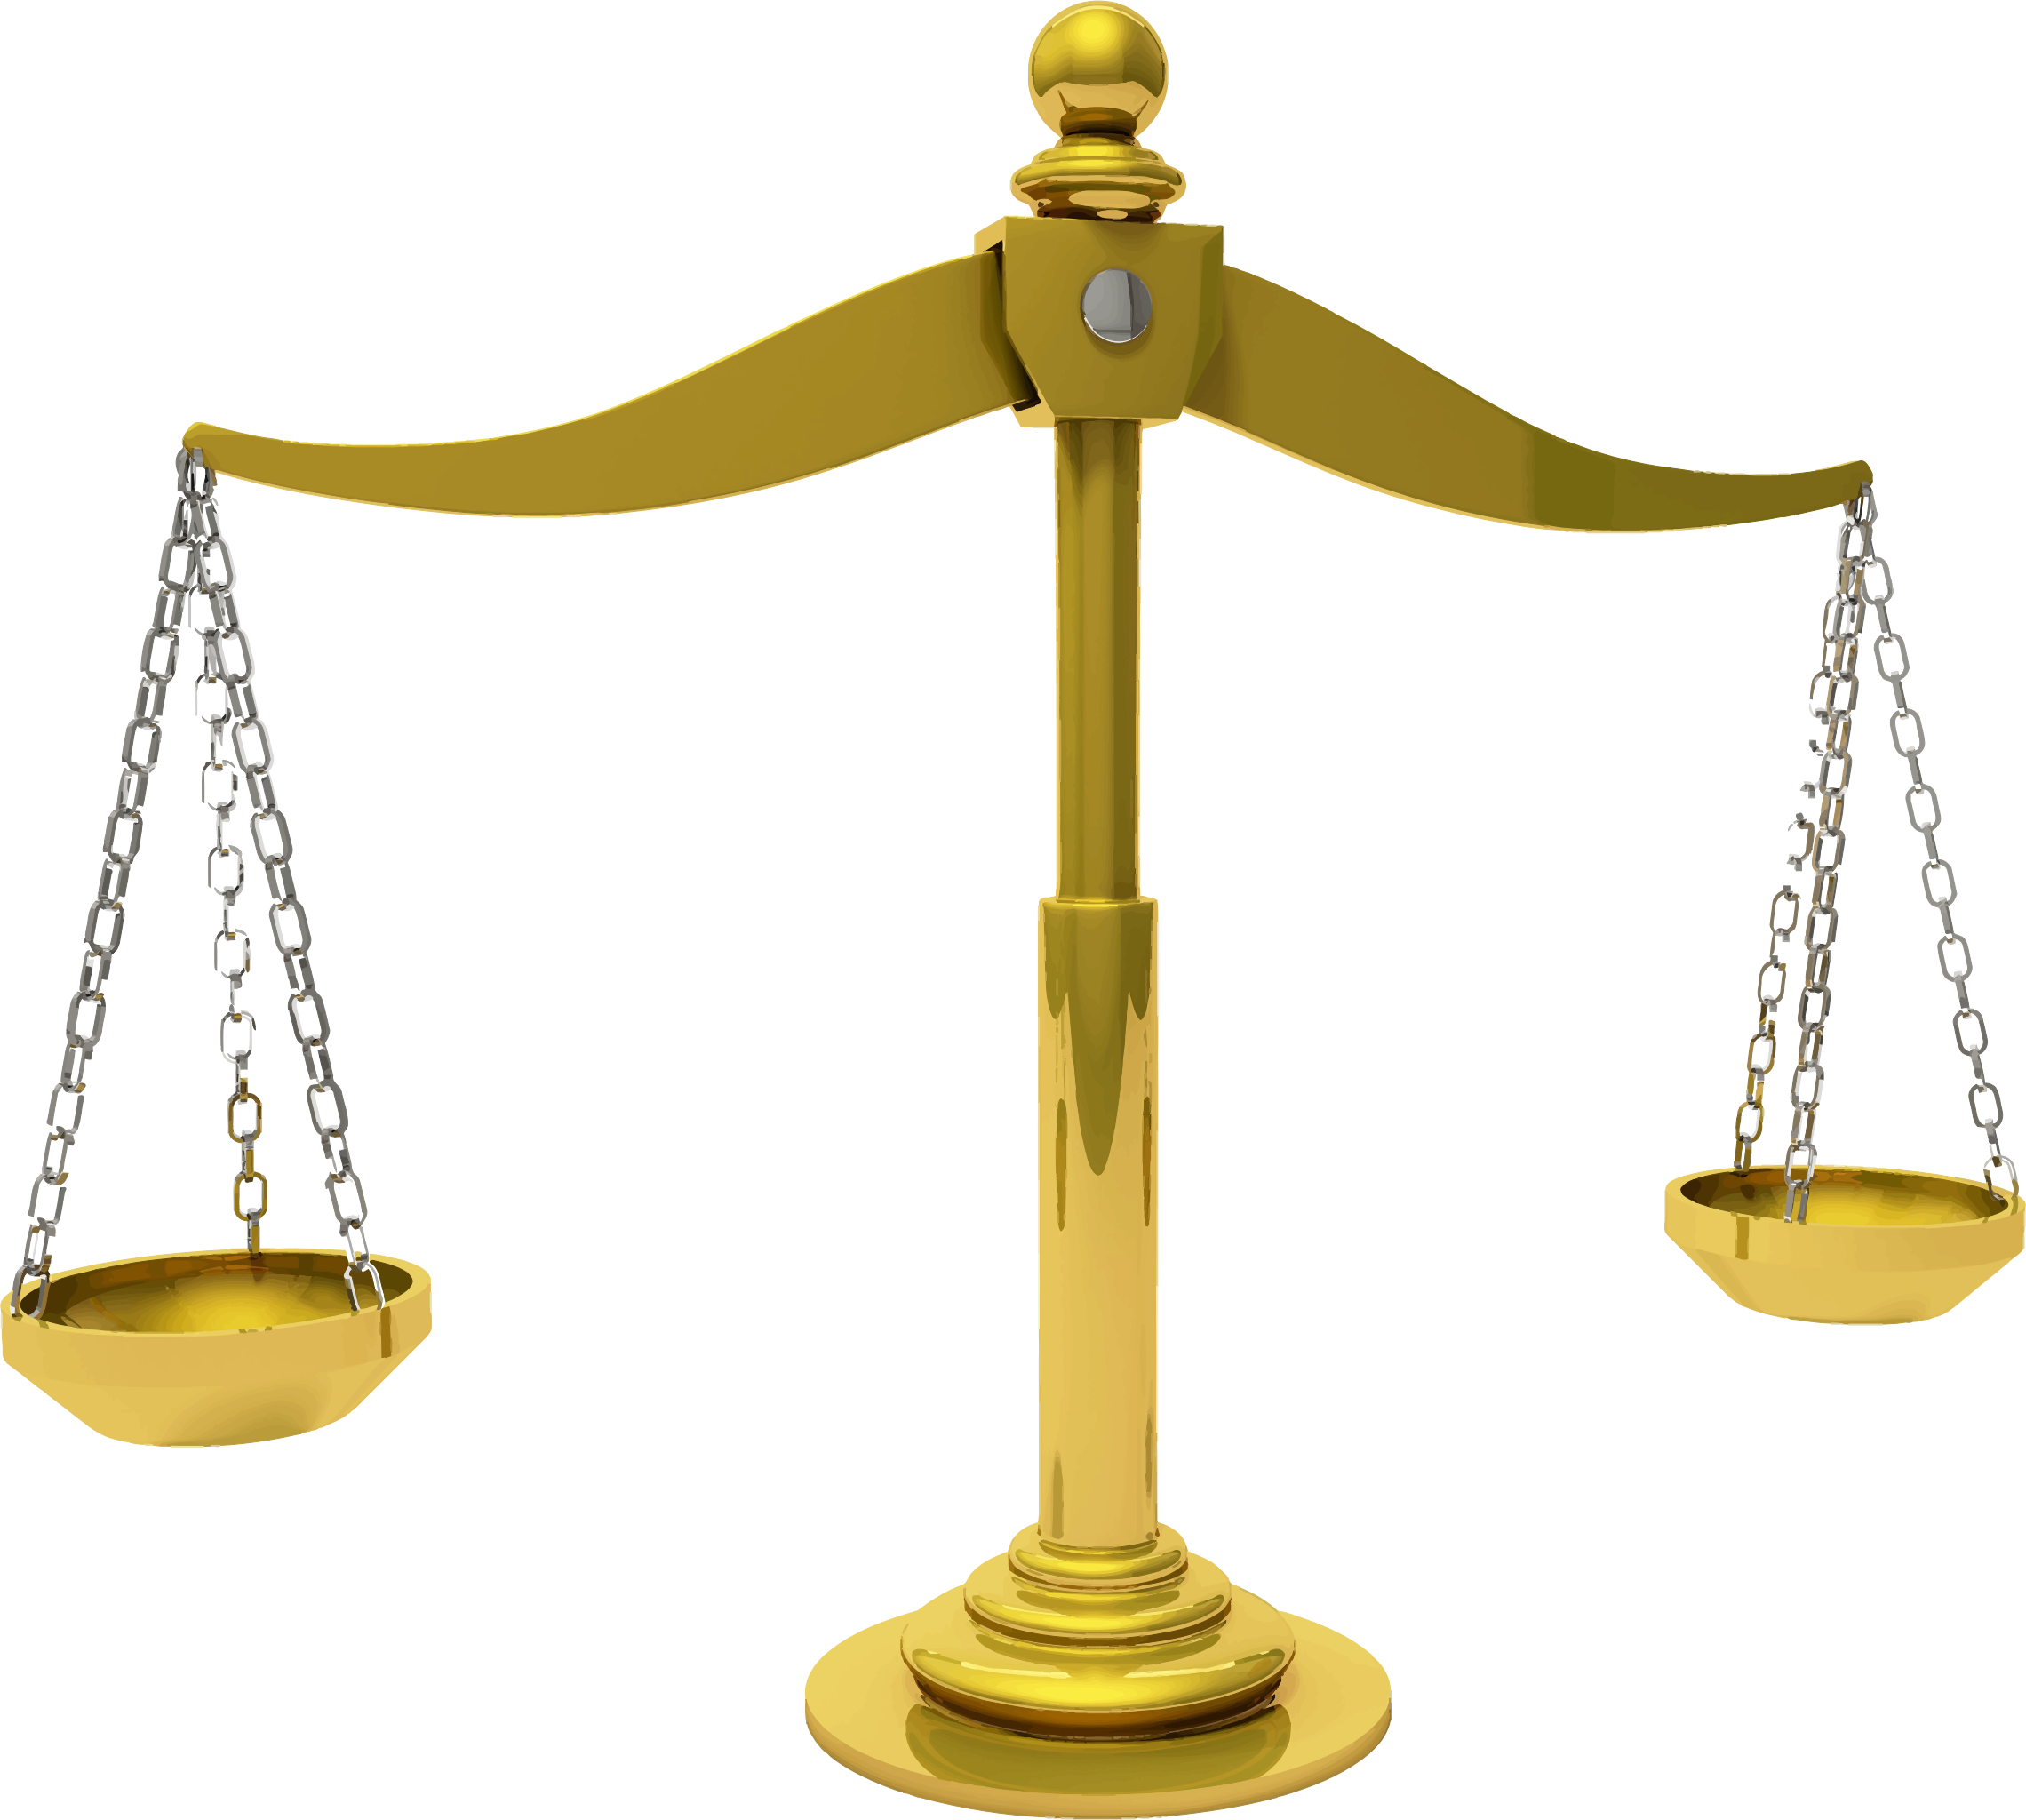 png royalty free stock Brass scales of big. Government clipart justice